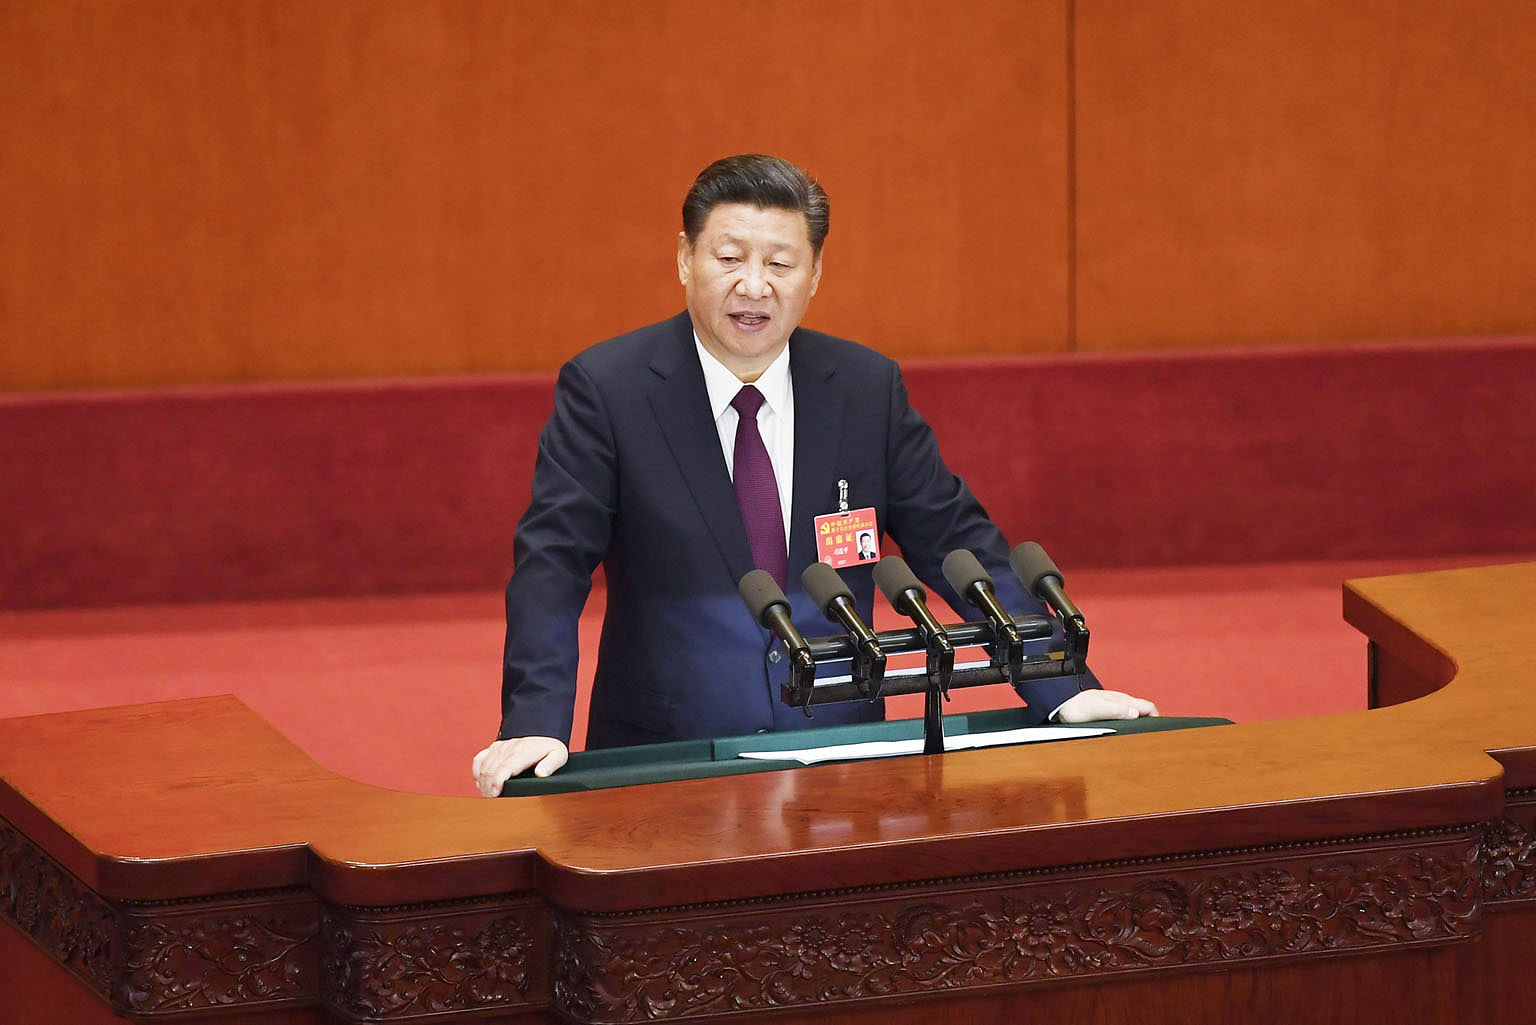 Chinese President Xi Jinping delivering a speech at the opening session of the Chinese Communist Party's Congress in Beijing on Oct 18. Mr Xi's most prominent policy initiative since he took power in 2012 has been his anti-corruption campaign.